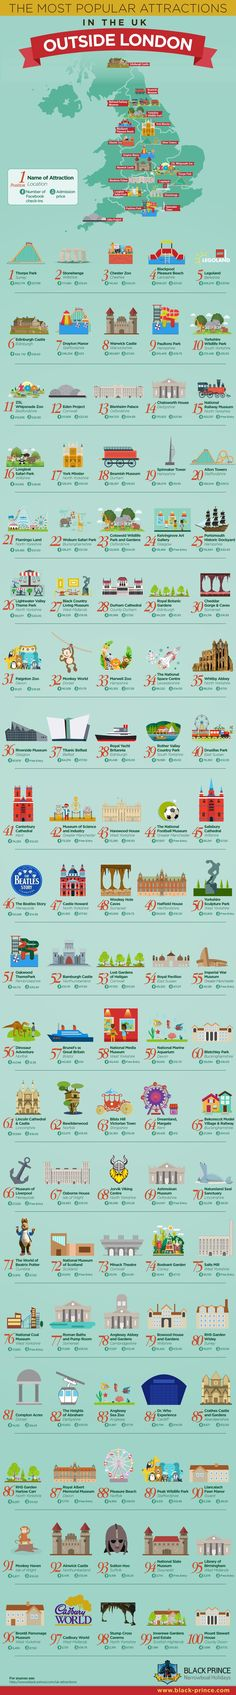 Most Popular Attractions Outside of London